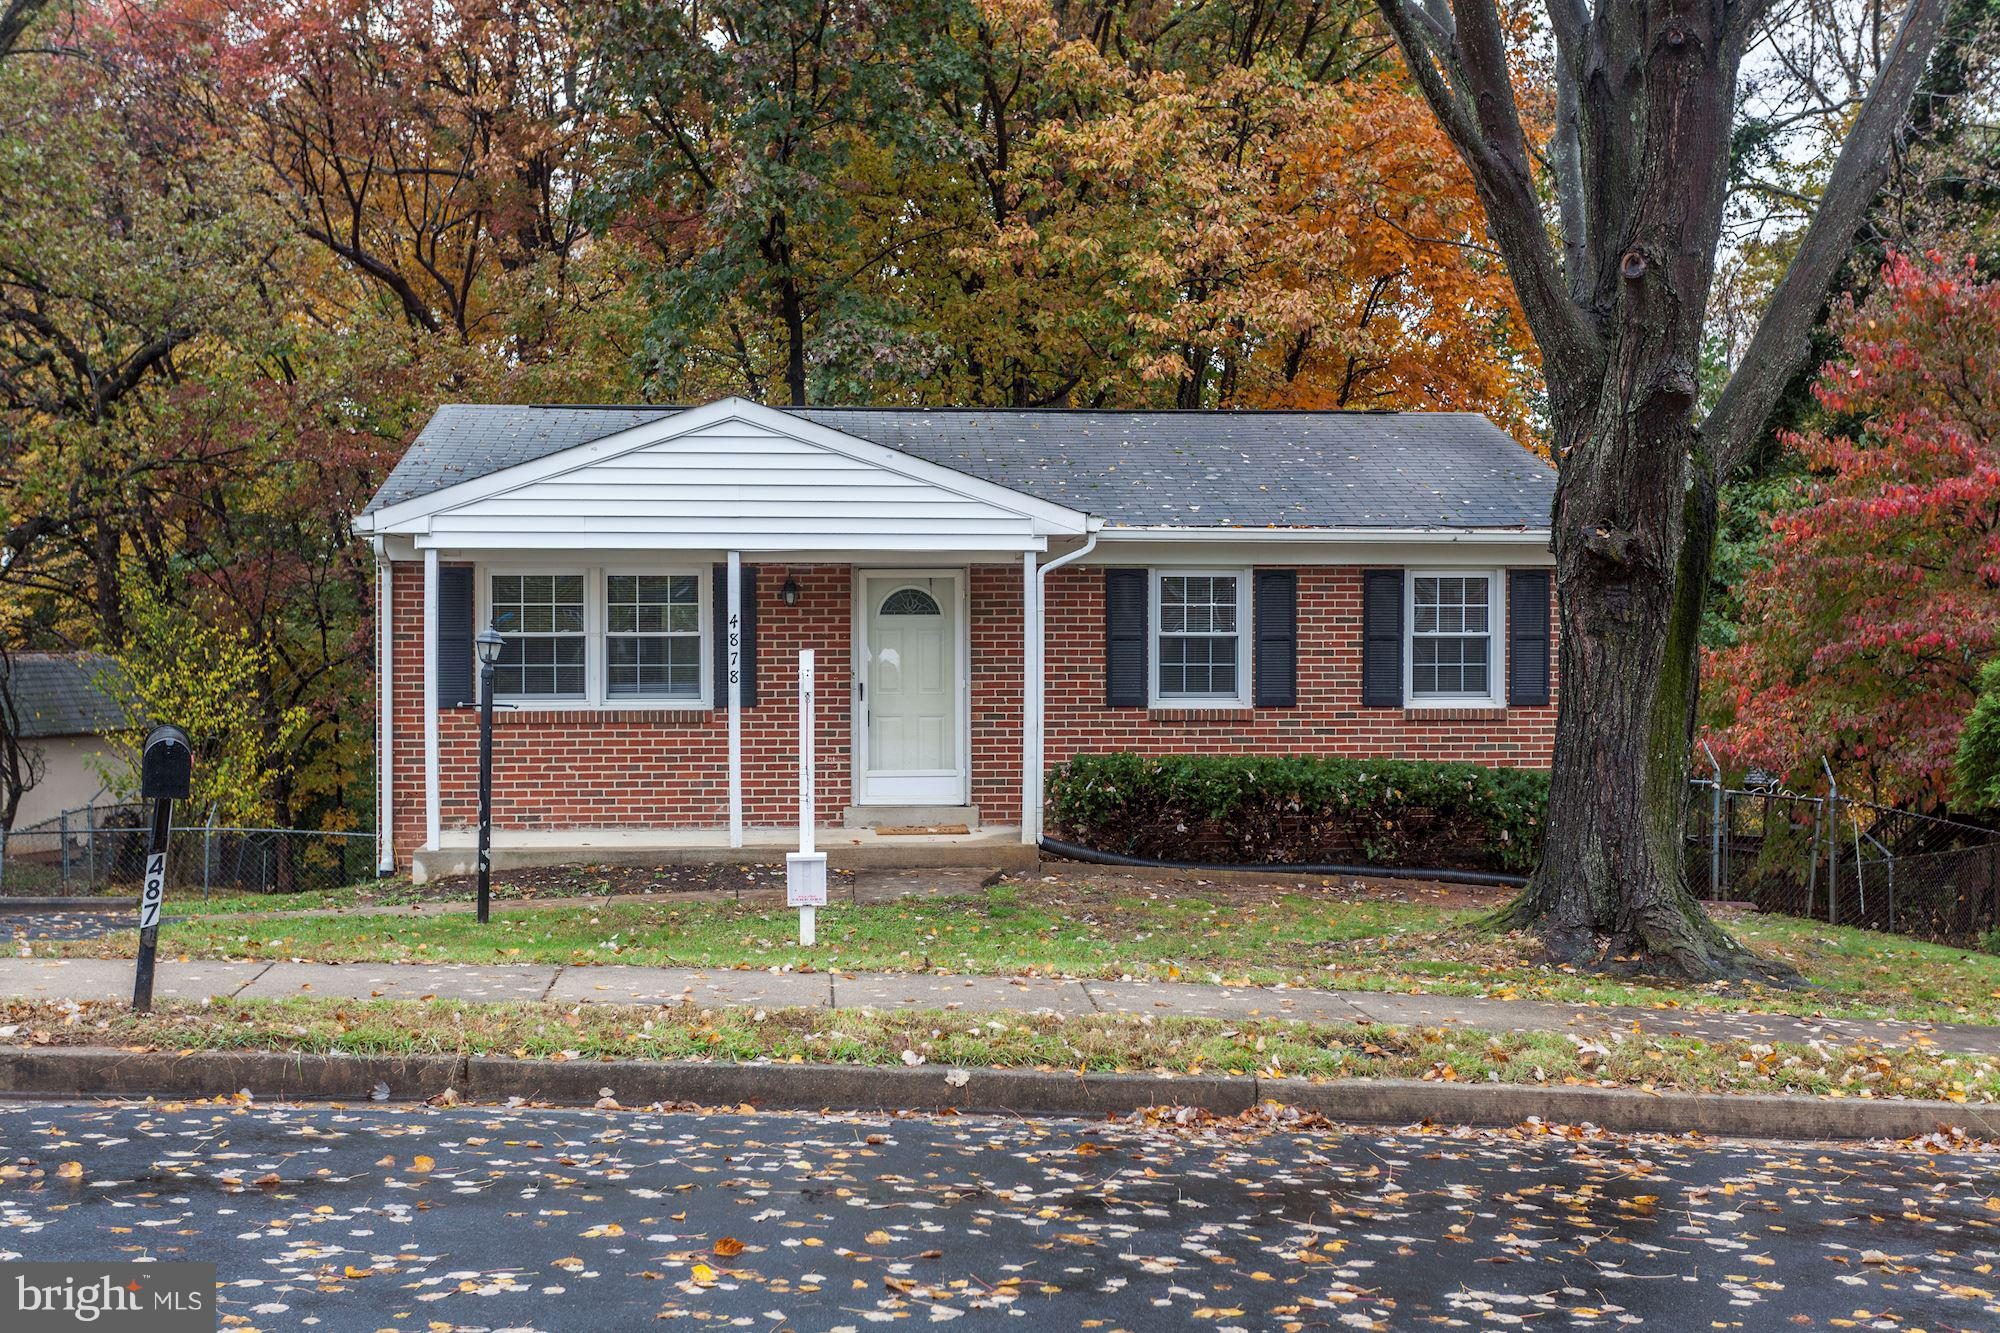 CONTRACT FELL OUT-- PRICE IMPROVED EVEN MORE --GREAT OPPORTUNITY ON THIS 4BR/2 FULL BA HOME WITH LARGE REC ROOM AREA,  UPDATED WINDOWS, NEWER WATER HEATER, NEWER UPDATED PANEL BOX.  EXPANSIVE DECK WHOLE LENGTH OF HOUSE, FENCED REAR YARD -NOT TOO FAR FROM ELEMENTARY SCHOOL----